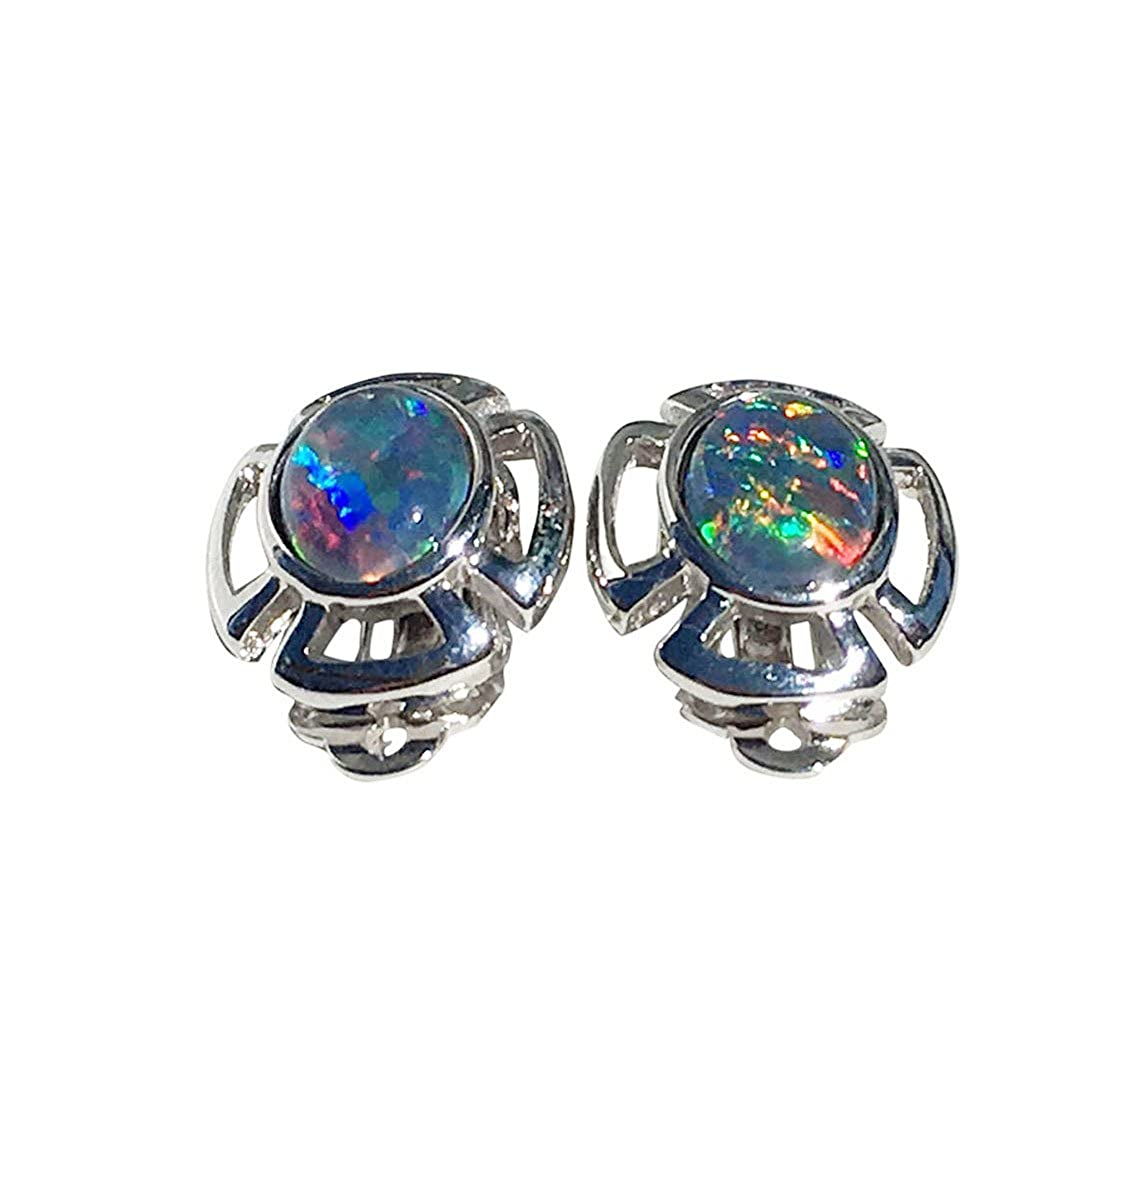 SHIMMERING RIVER STERLING SILVER OPAL EARRINGS